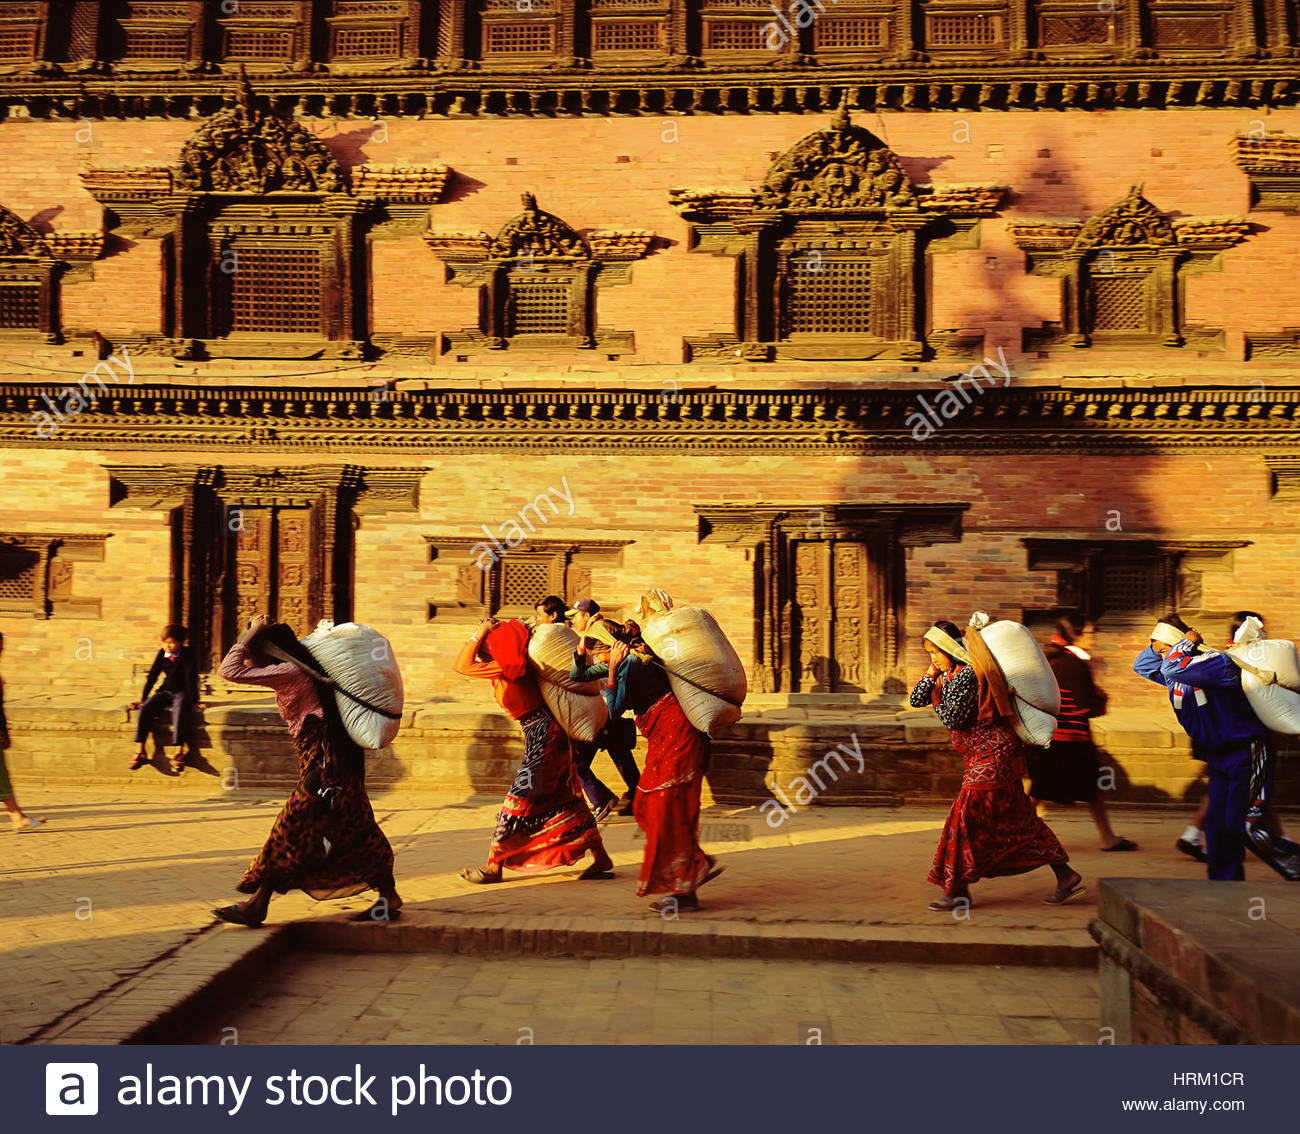 People carrying rice bags near the Fifty-Five Windows Palace, Bhaktapur, Nepal, Asia, - Stock Image